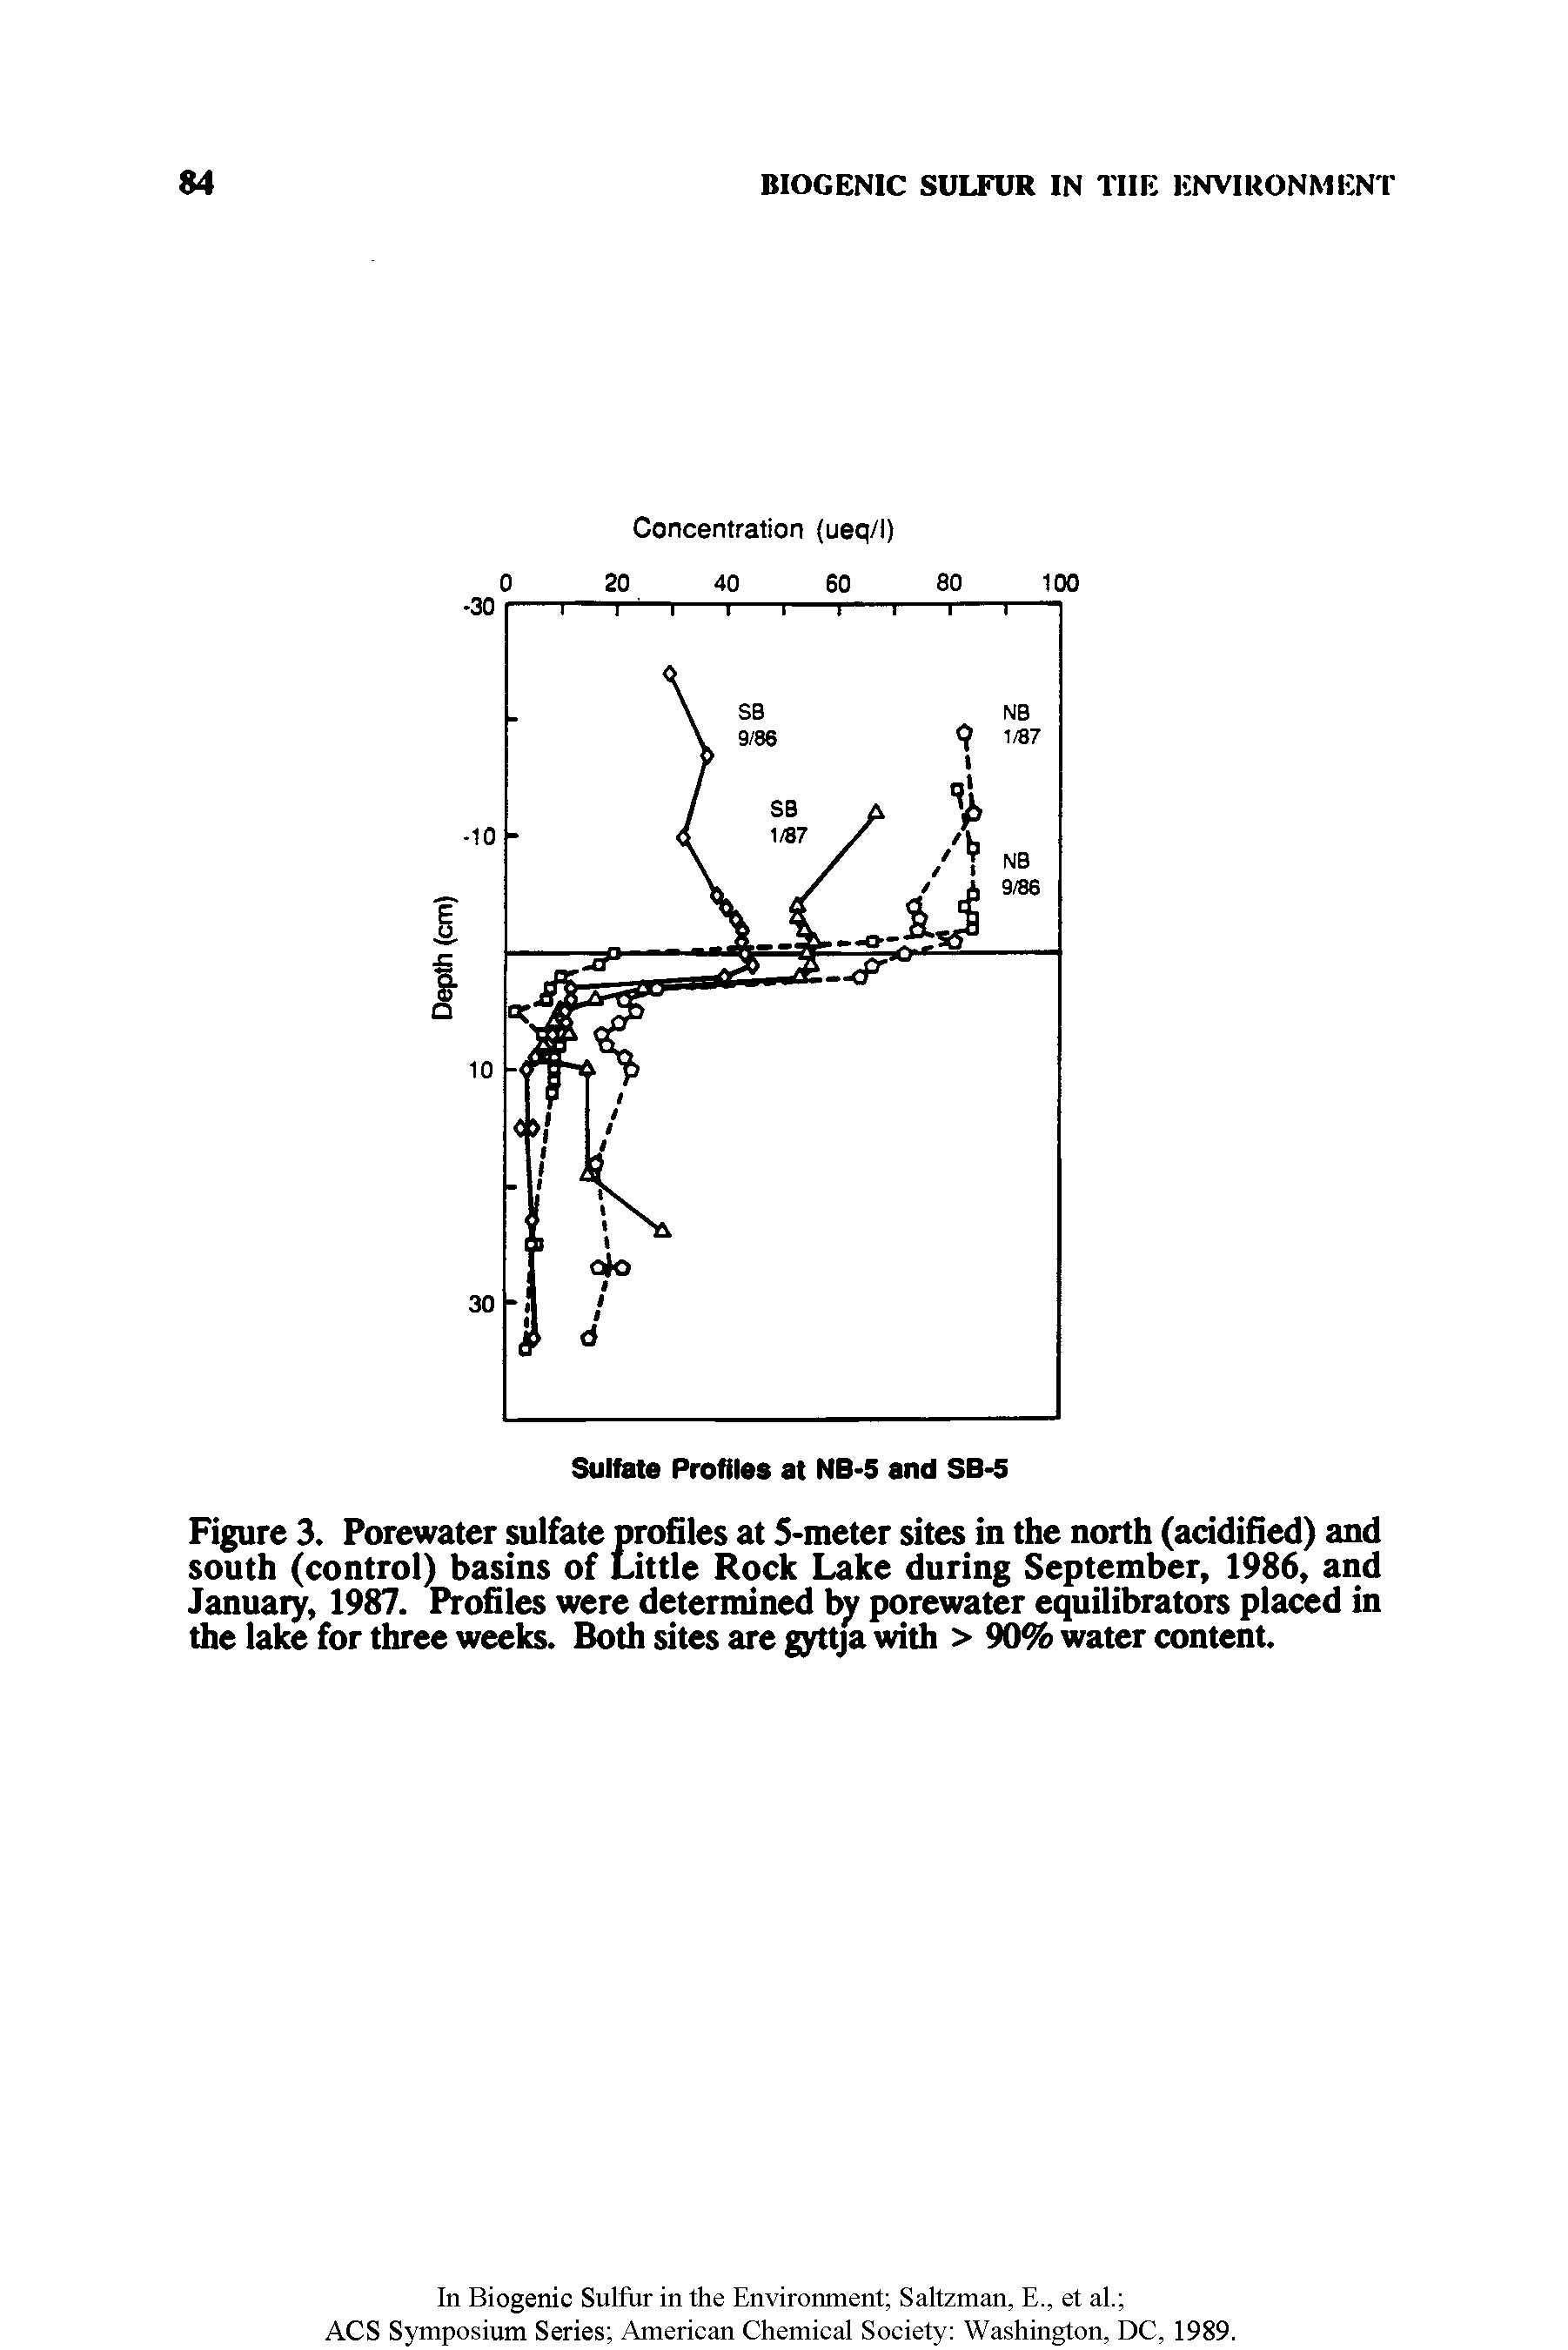 "Figure 3. Porewater sulfate profiles at 5-meter sites in the north (acidified) and south (control) basins of <a href=""/info/little_rock_lake"">Little Rock Lake</a> during September, 1986, and January, 1987. Profiles were determined by porewater equilibrators placed in the lake for three weeks. Both sites are gyttja with > 90% water content."